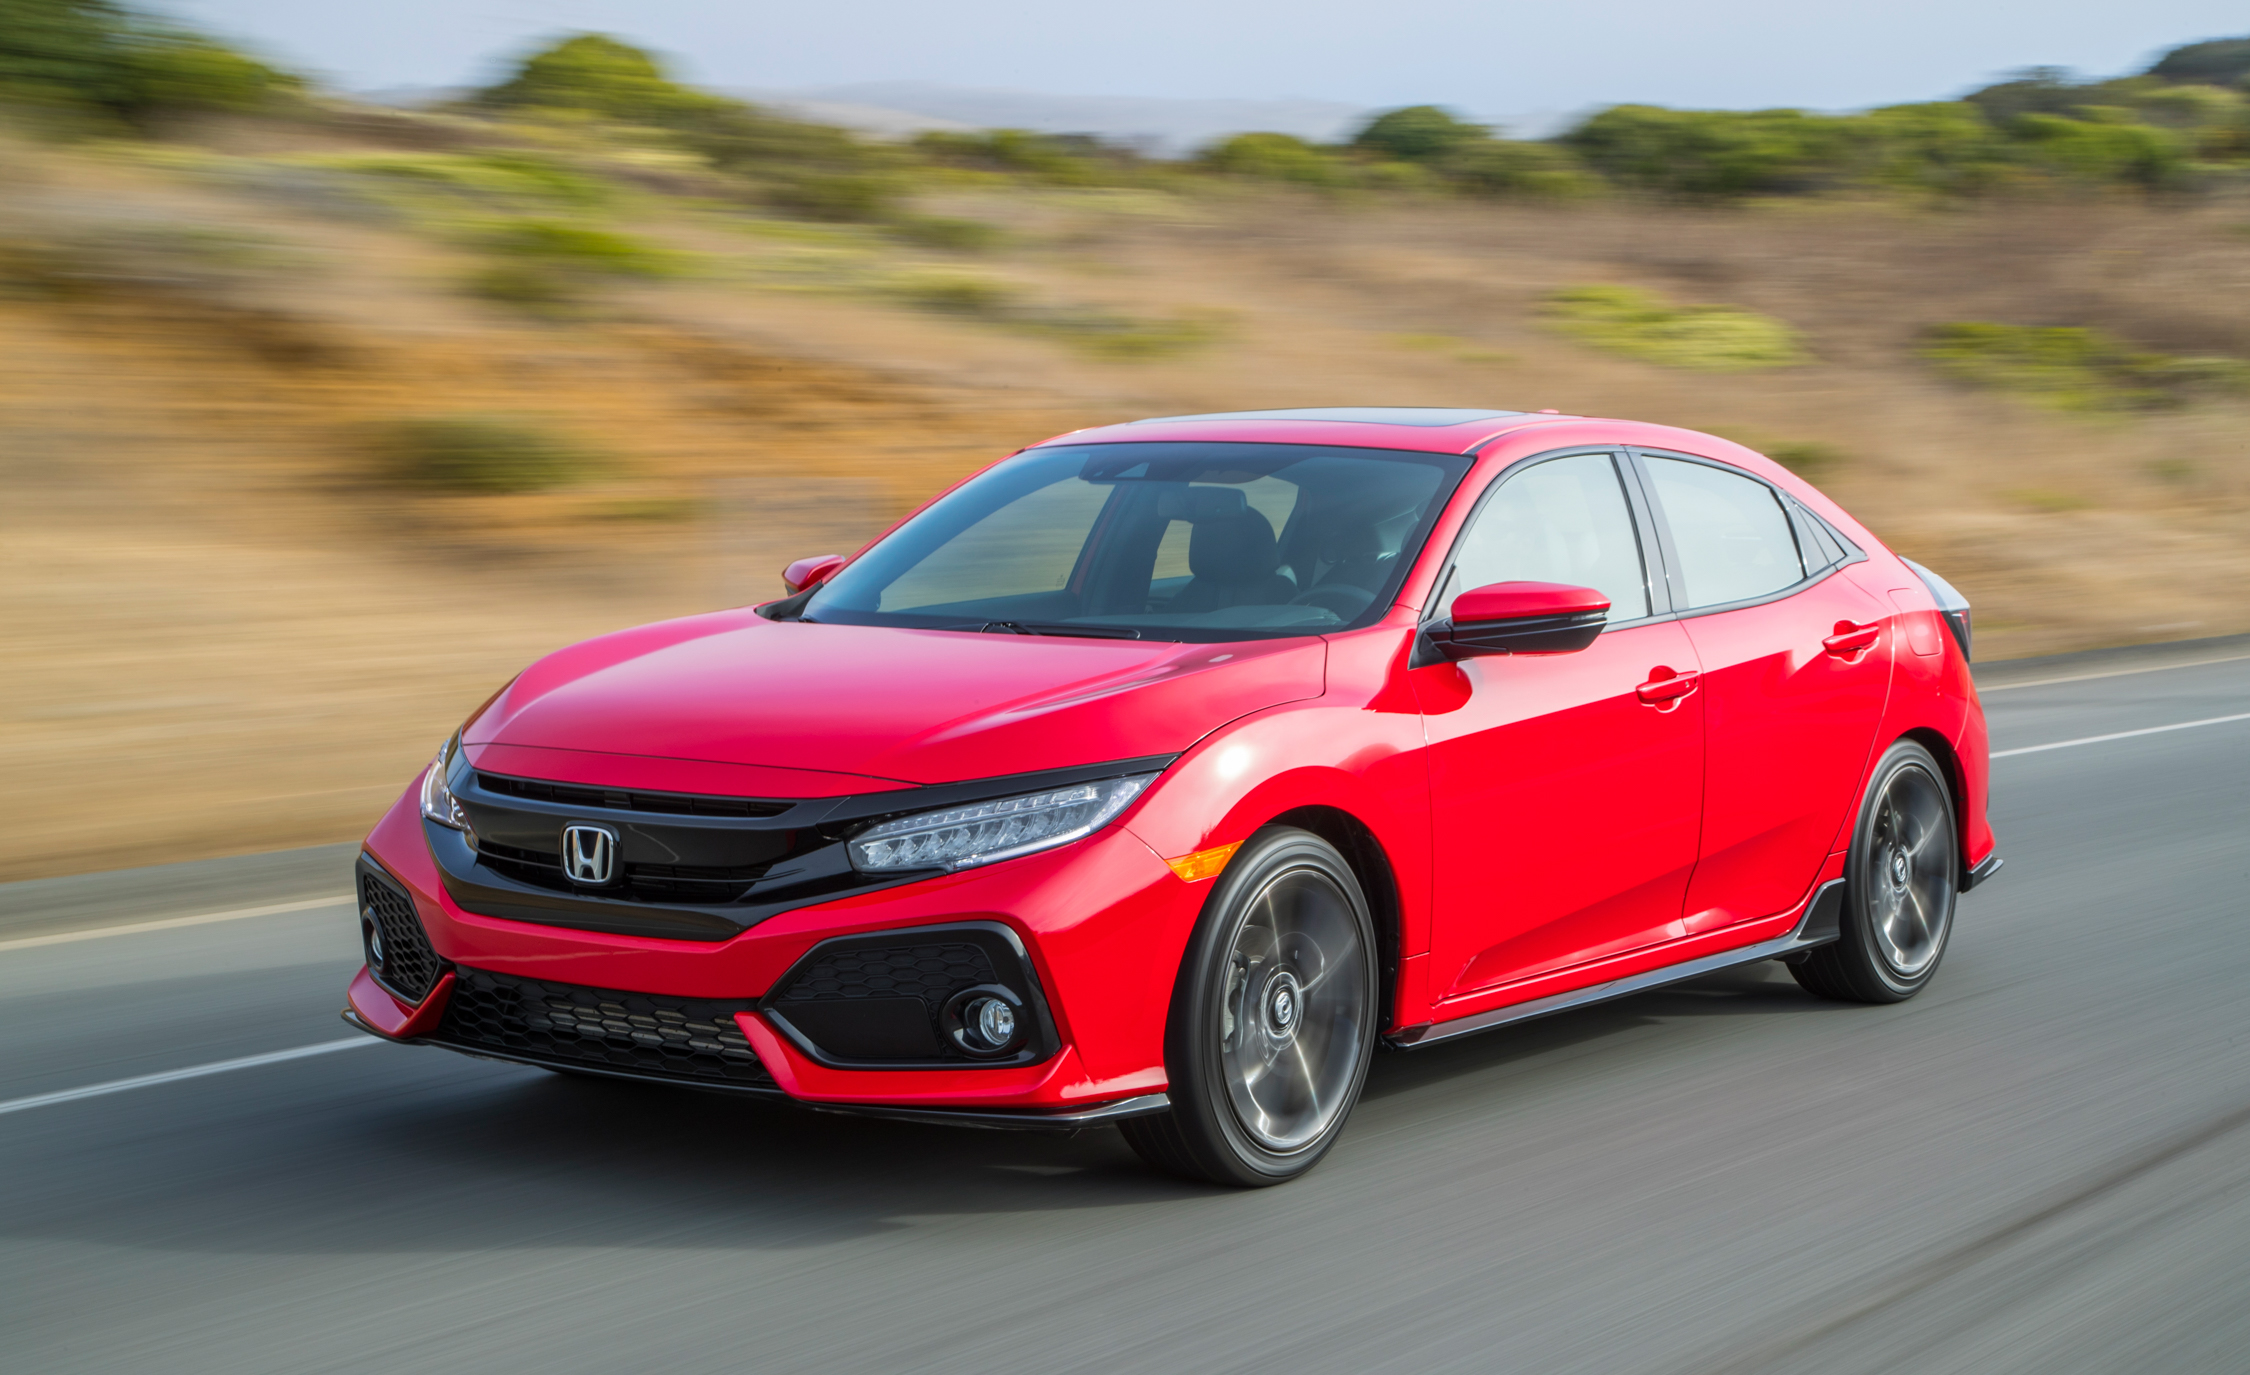 2017 Honda Civic Hatchback (View 15 of 34)